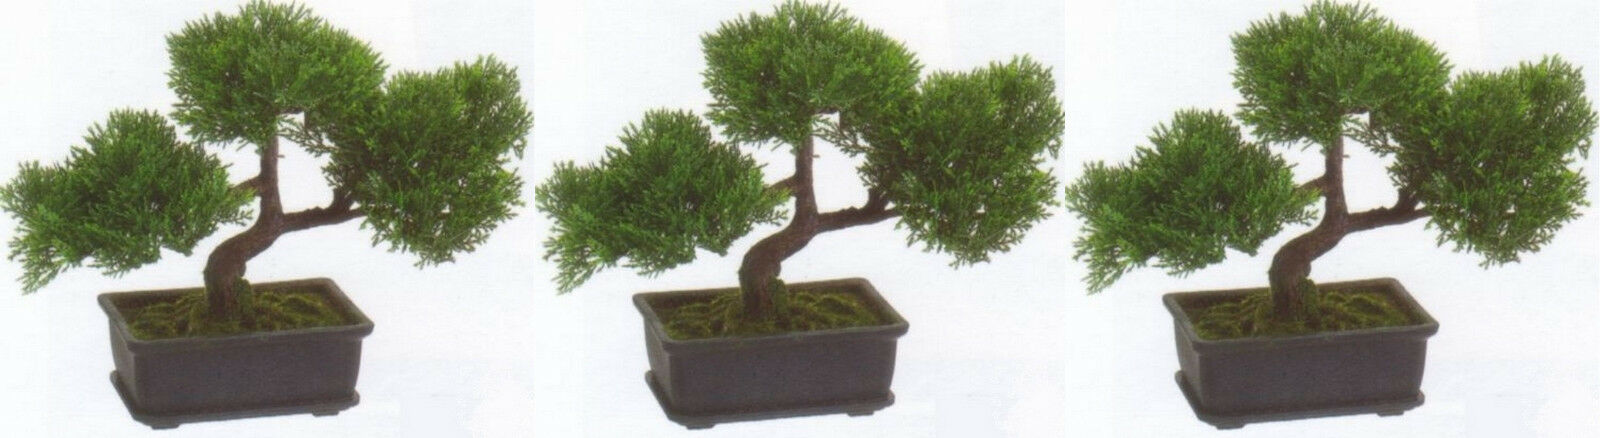 3 ARTIFICIAL 9  TEA LEAF BONSAI TREE TOPIARY IN OUTDOOR PLANT POOL PATIO HOME